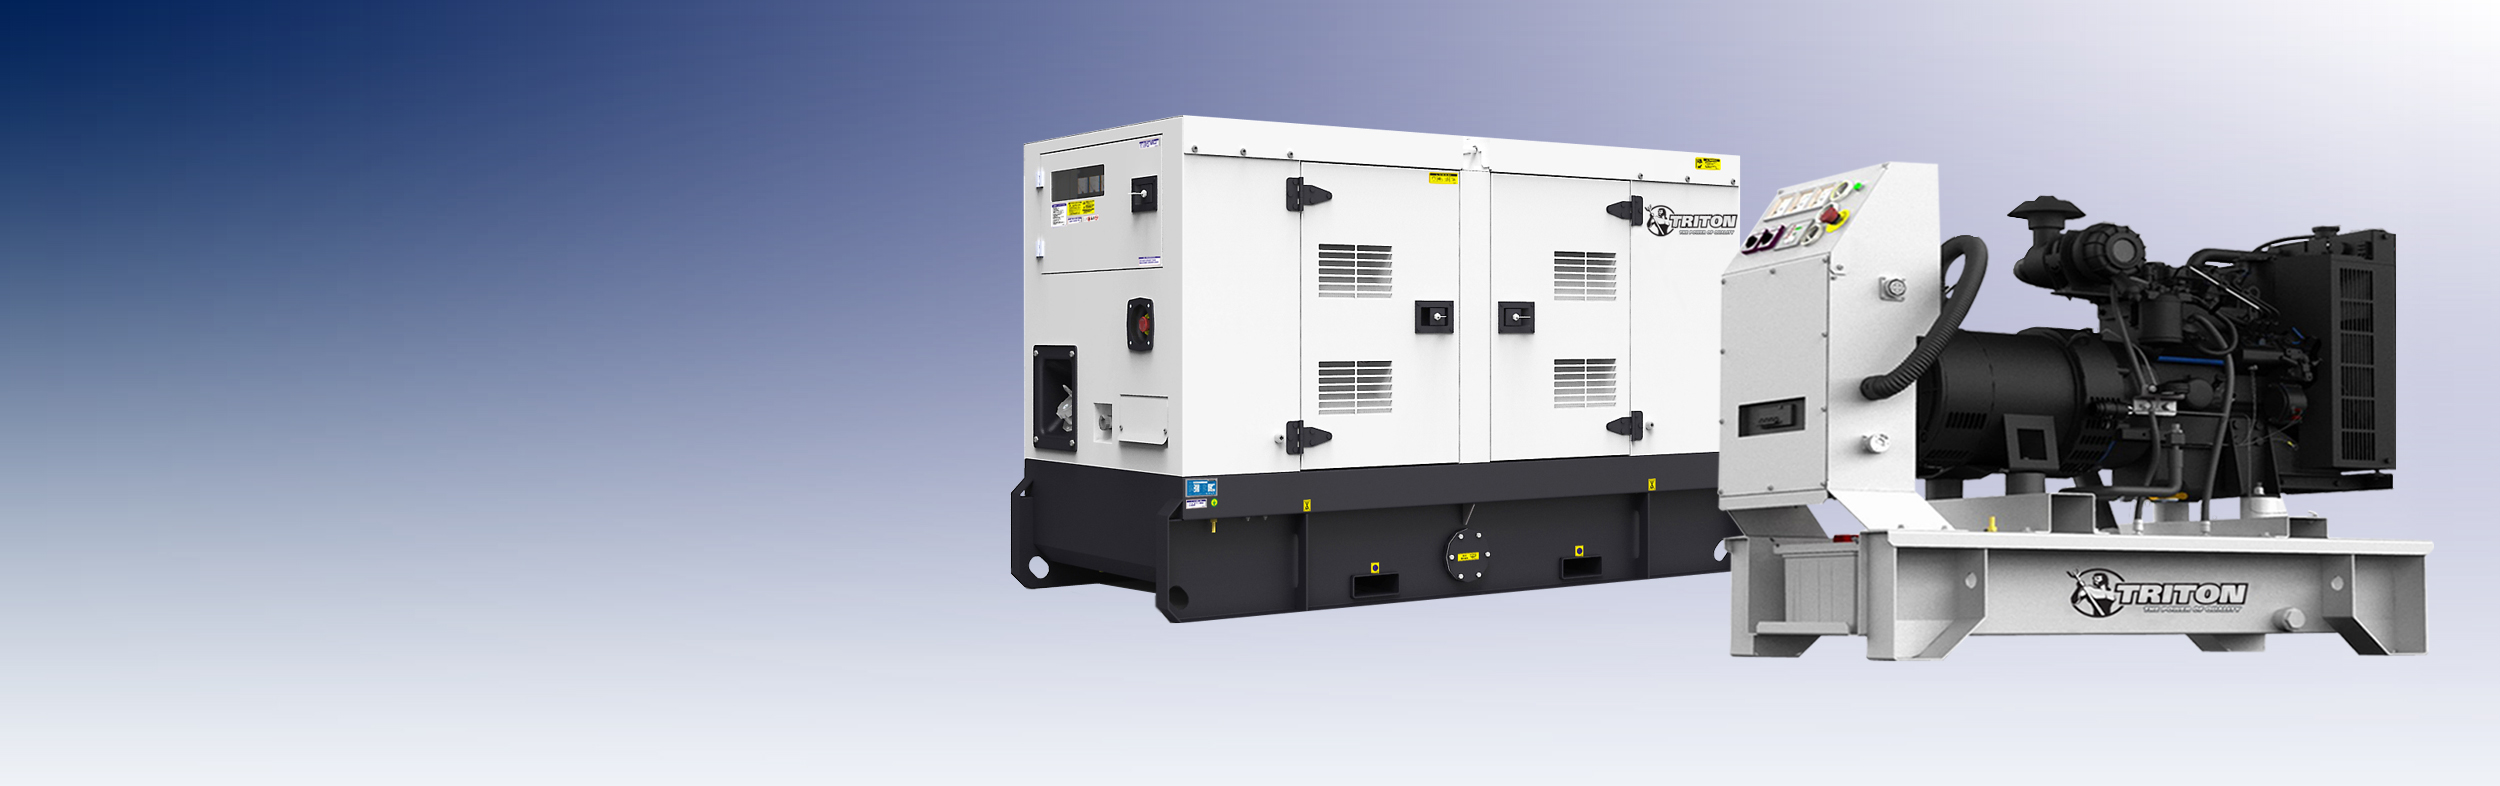 10kva Perkins Generator Diesel Wiring New Gen Set Xfer Panel Diagram 3 Www Your Home Electrical 10 Kva 50hz